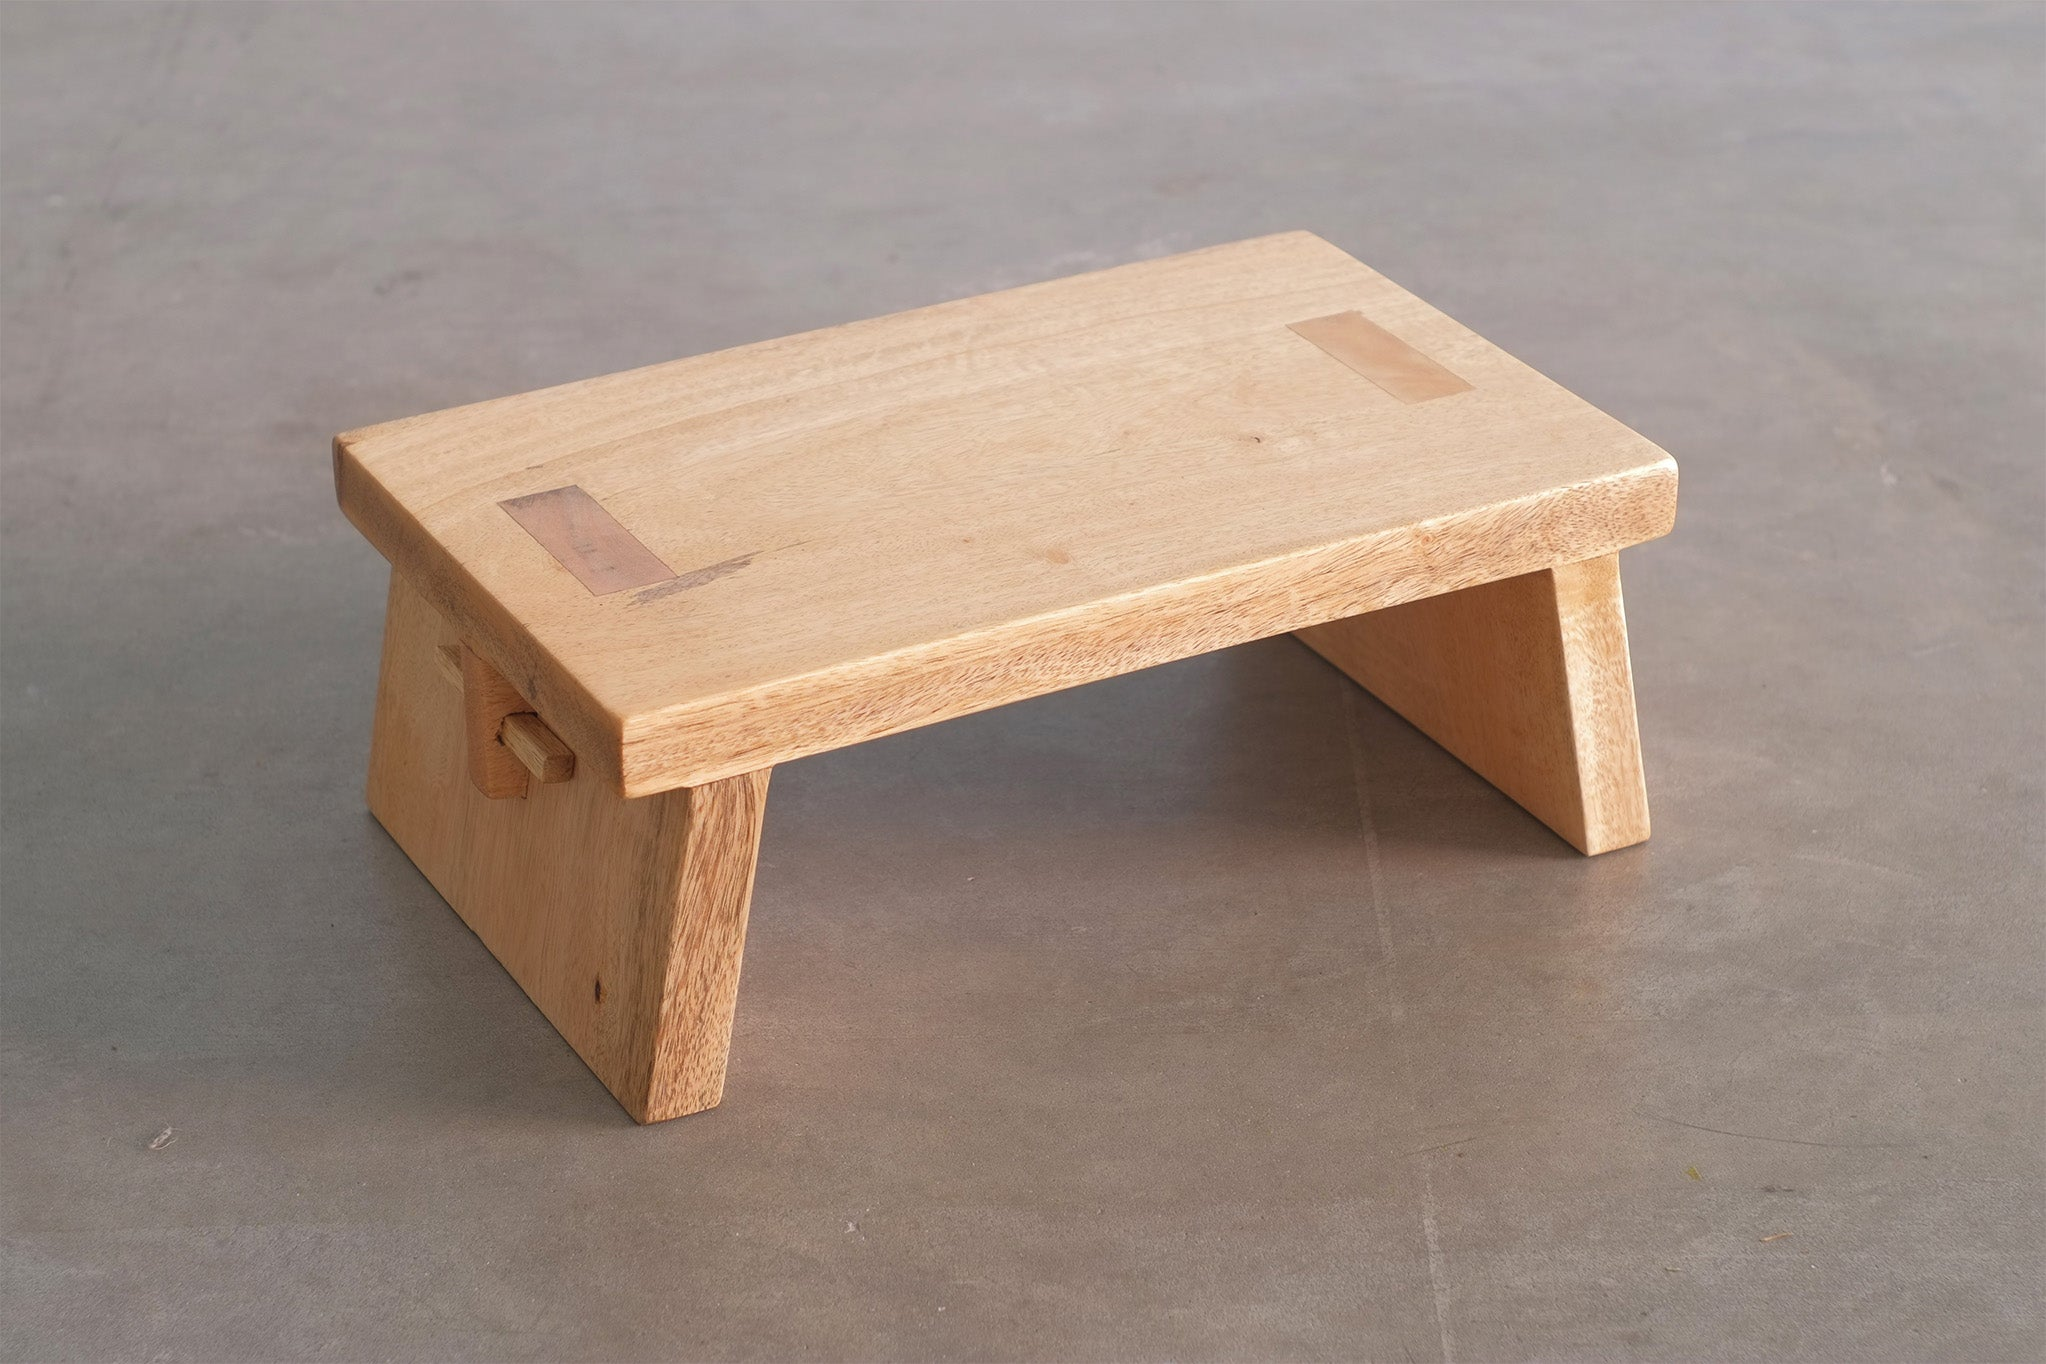 Odonata Step Stool From The Source